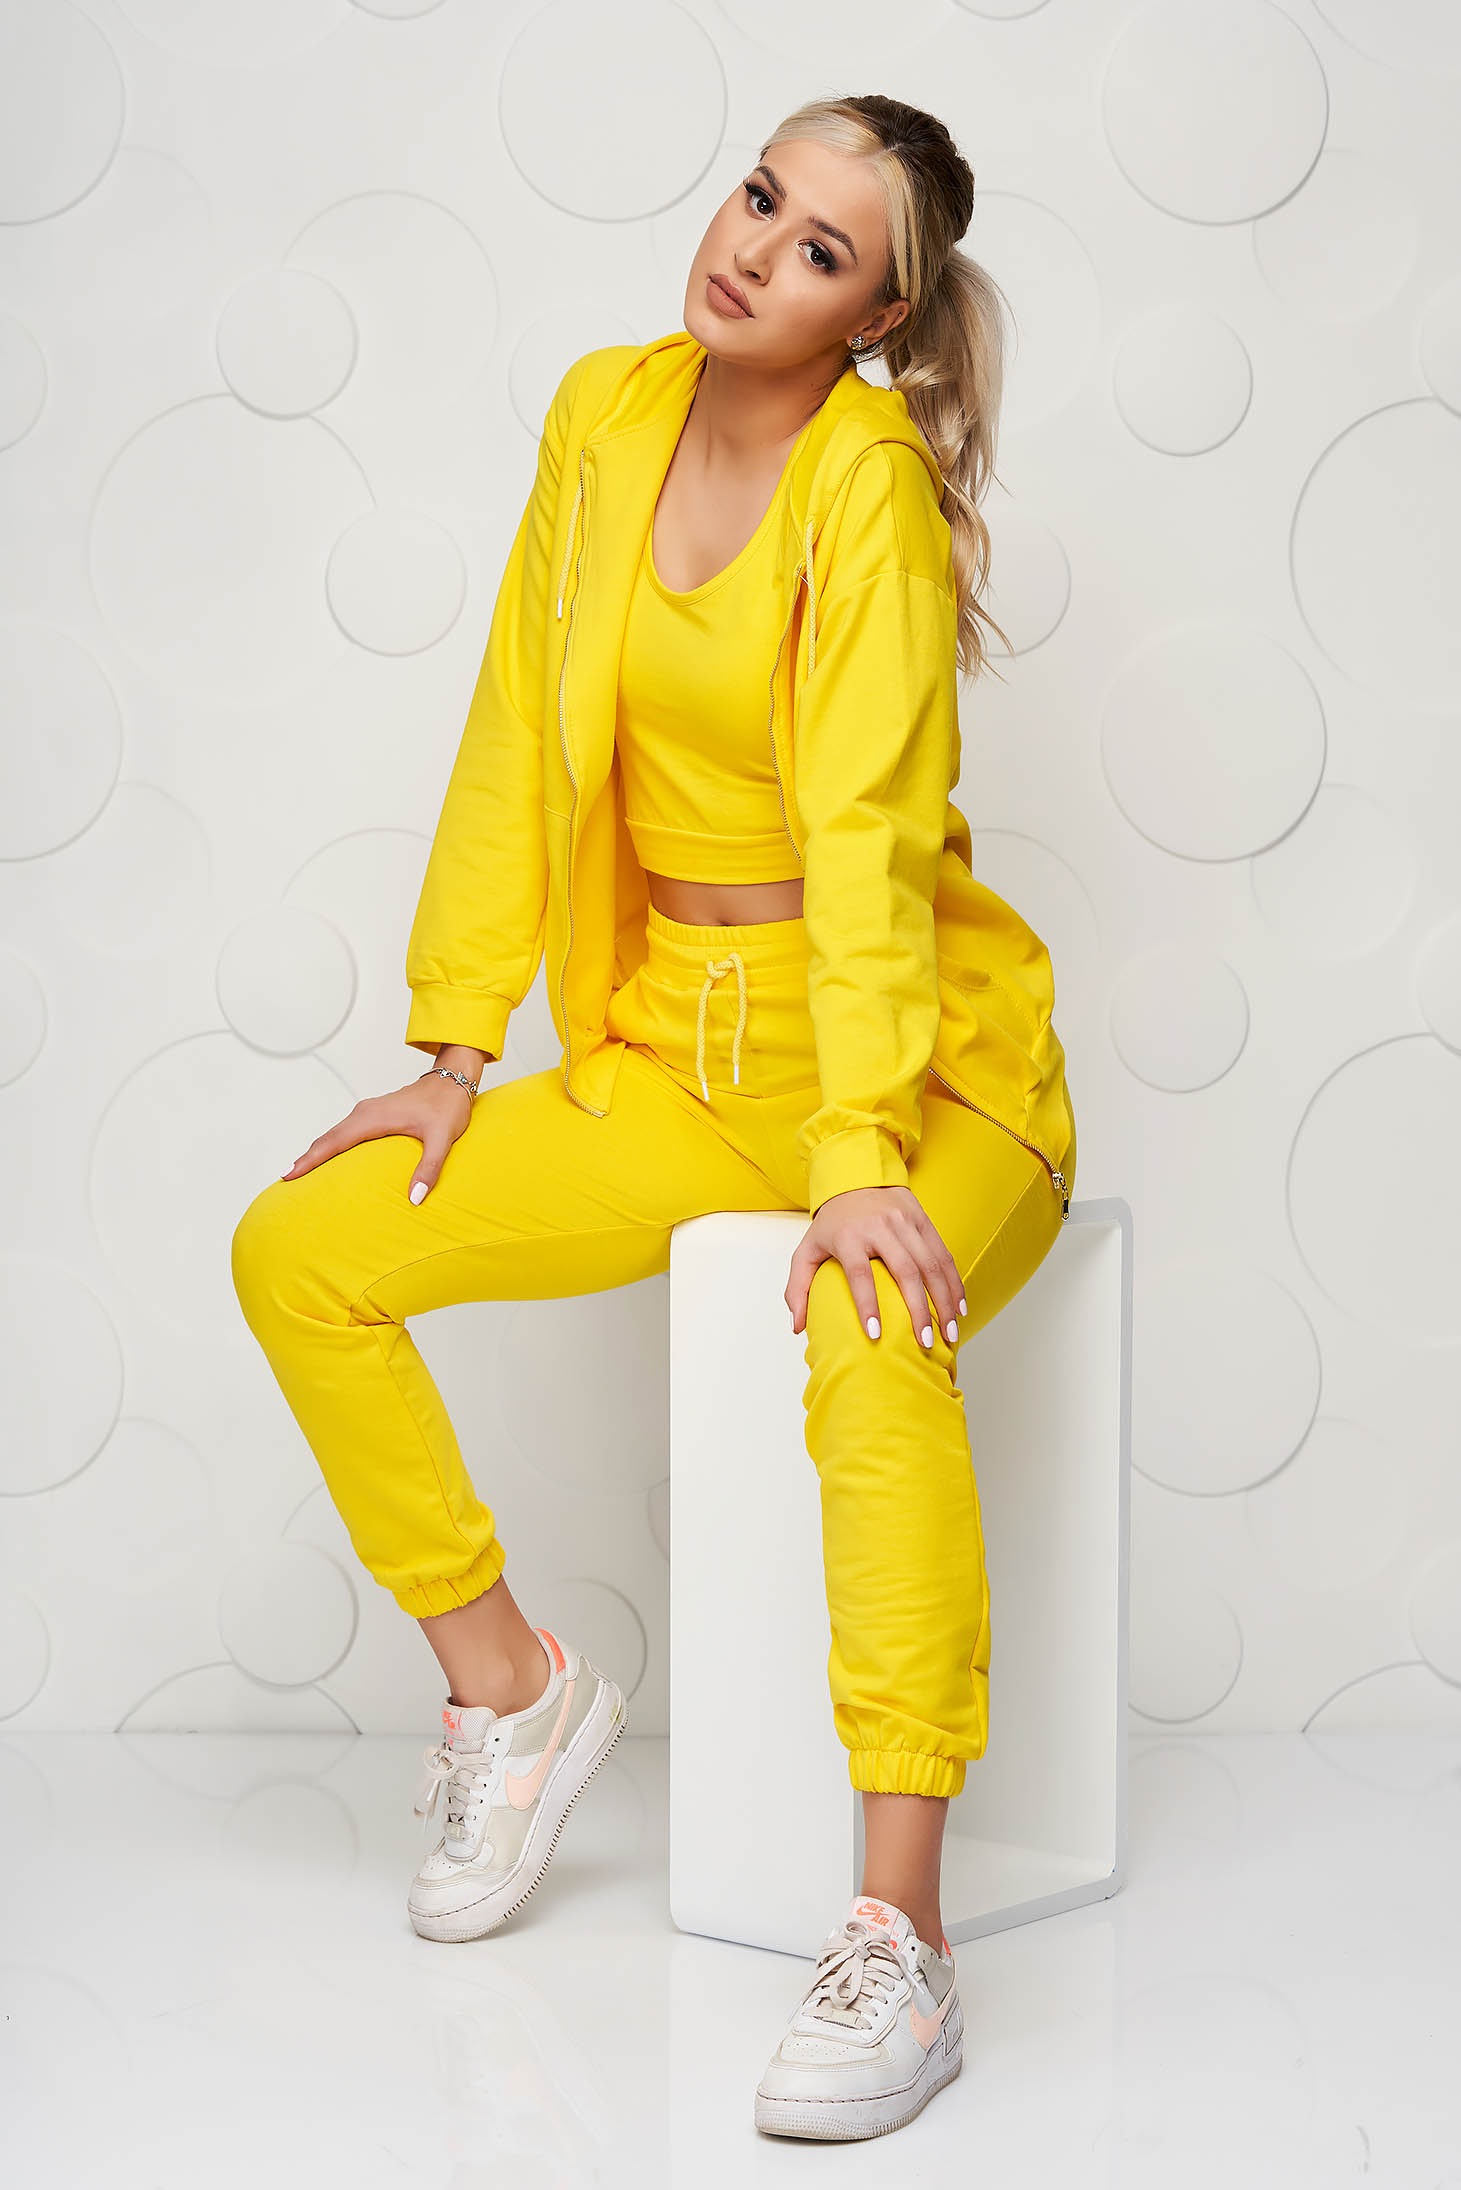 Yellow sport 2 pieces loose fit